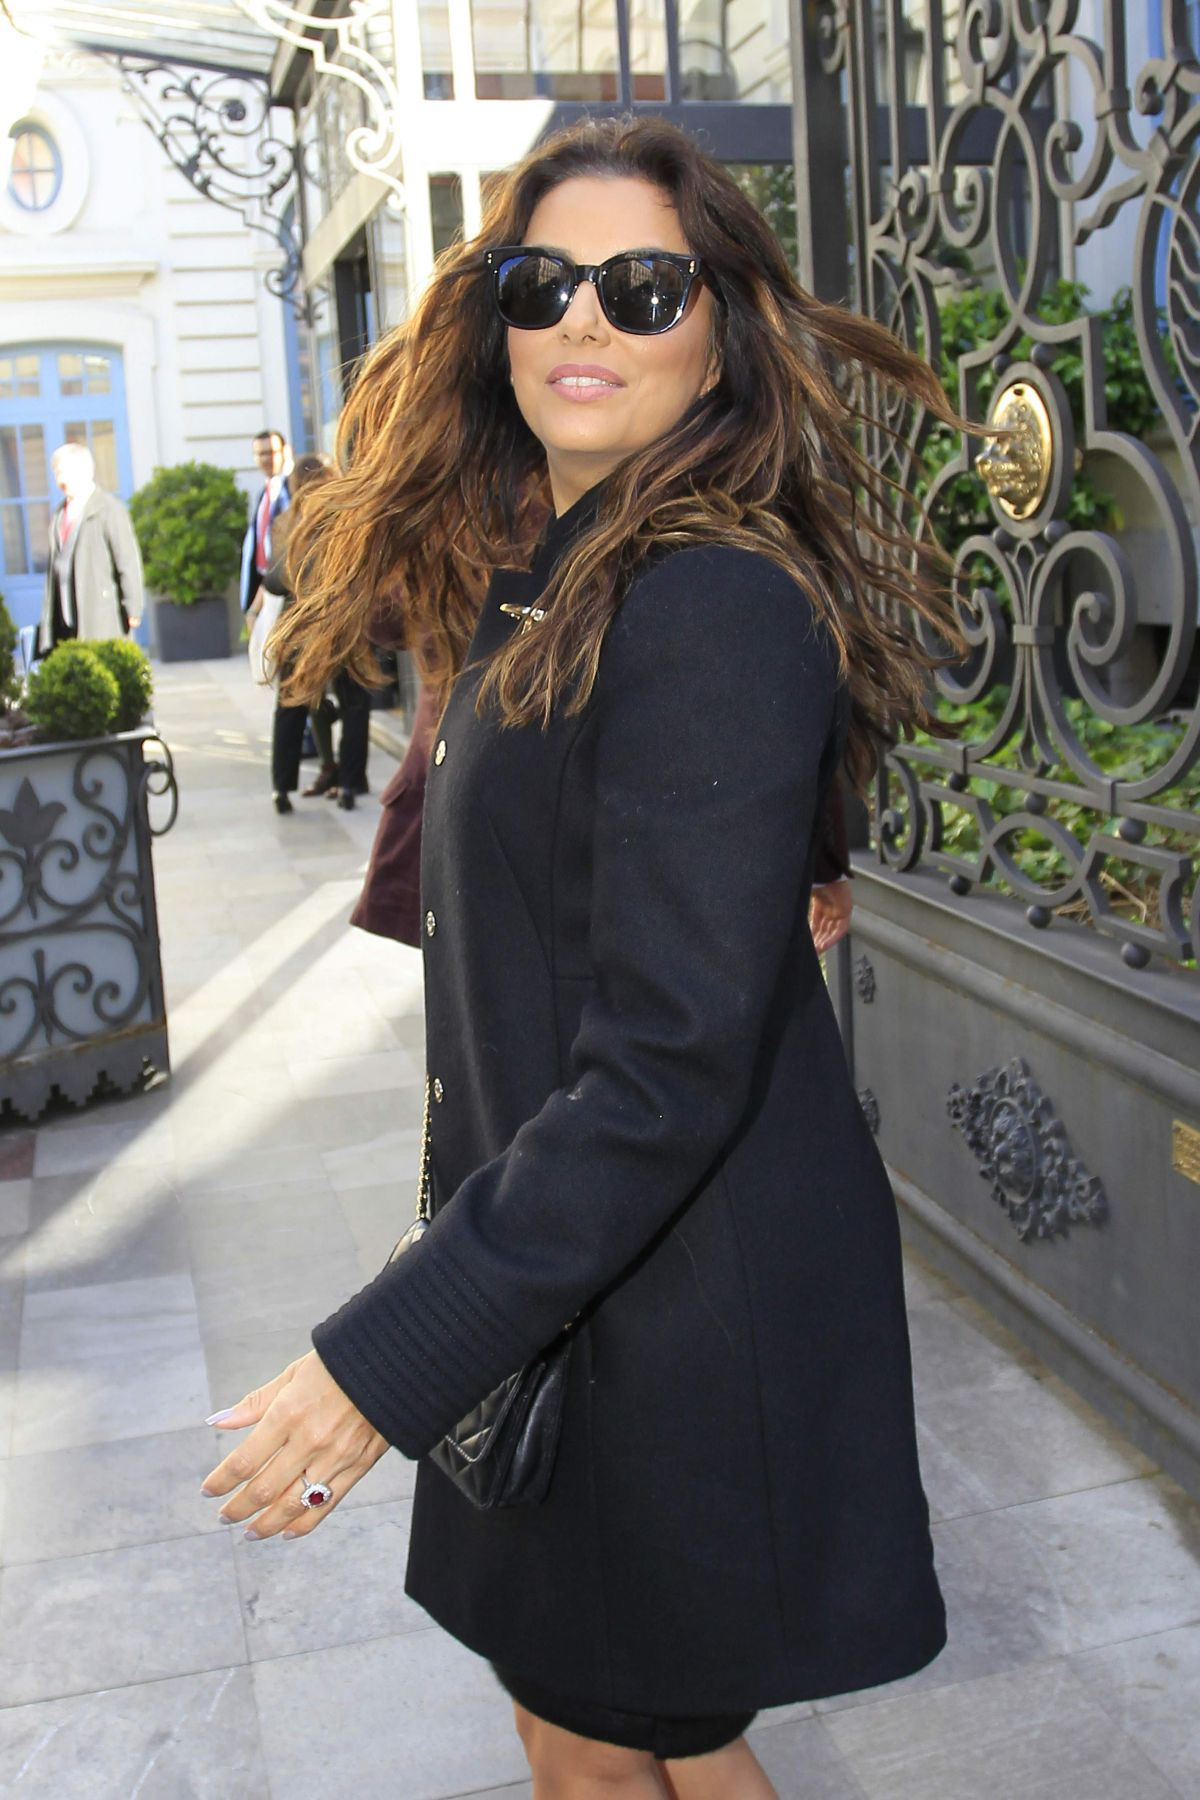 EVA LONGORIA Out and About in Madrid 04*01/2016